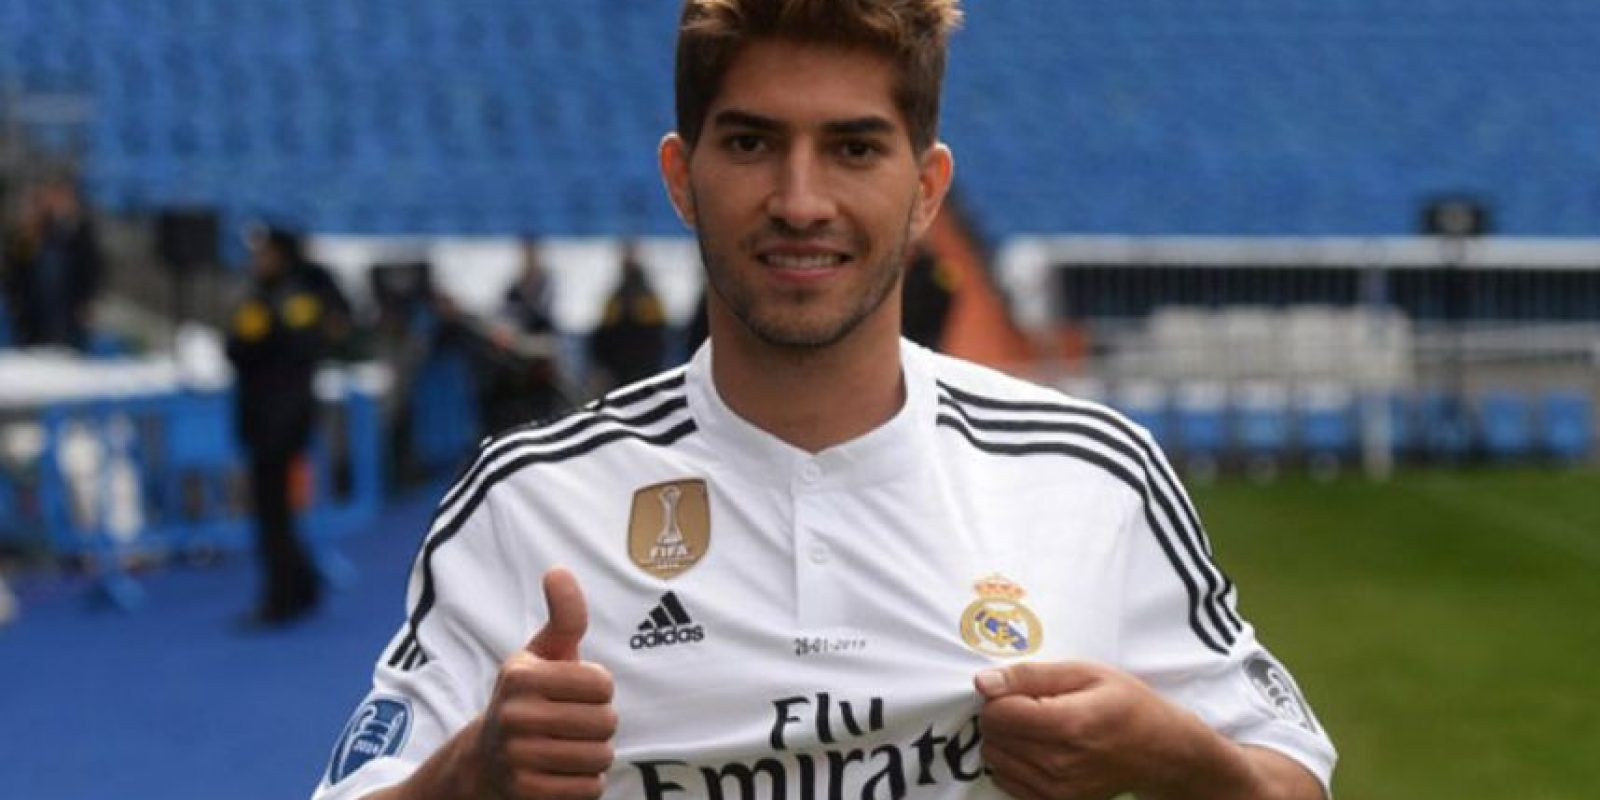 Lucas Silva Foto: Getty Images